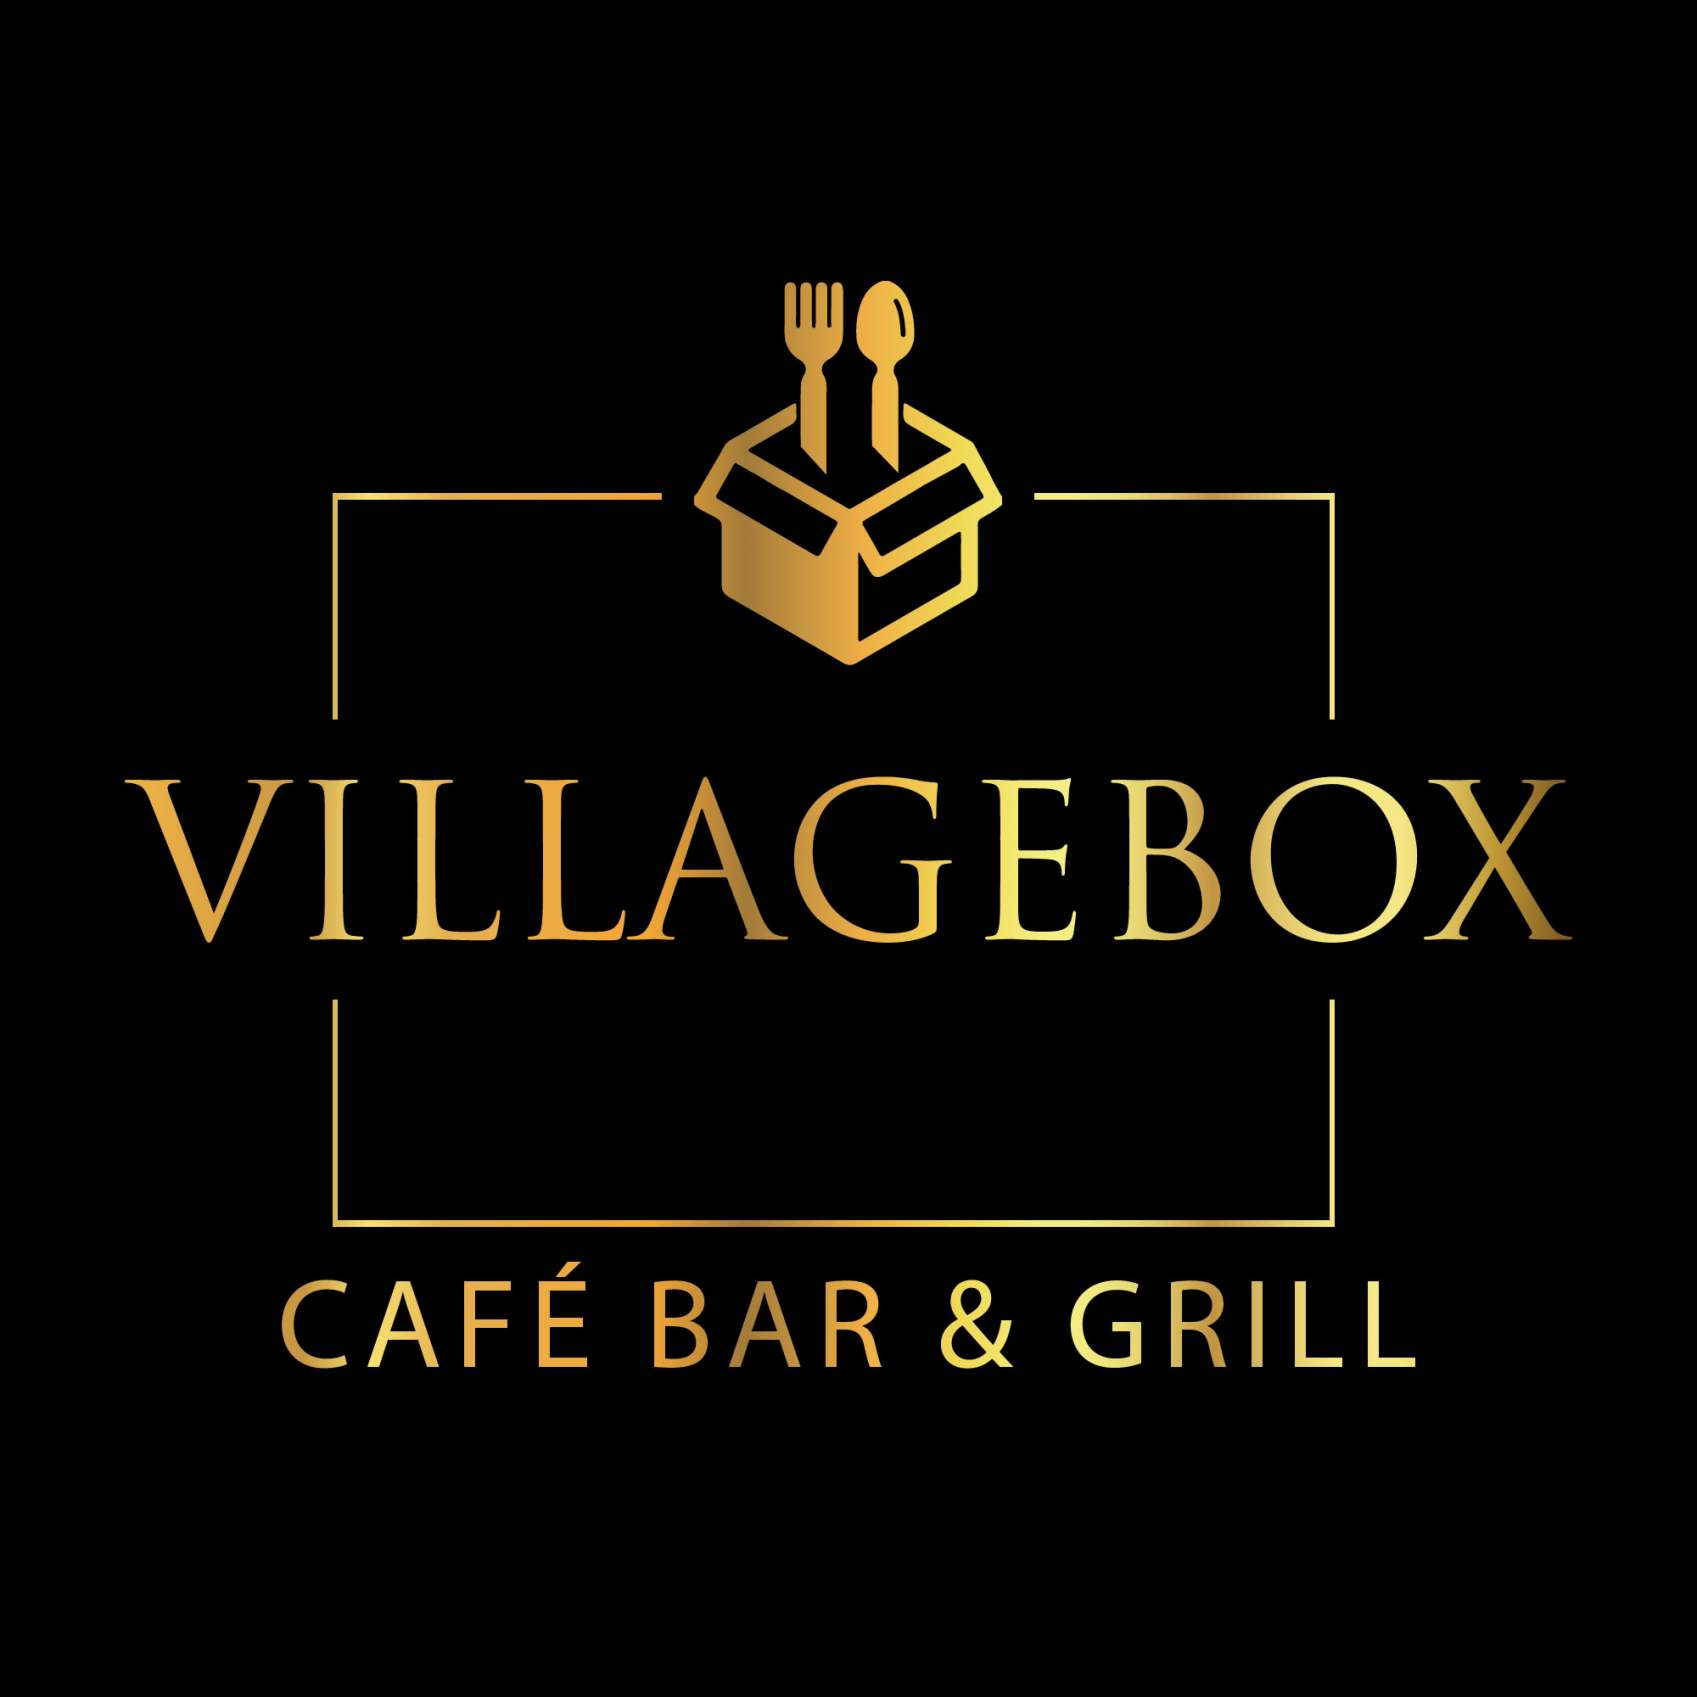 VILLAGE BOX CAFE LLC Logo